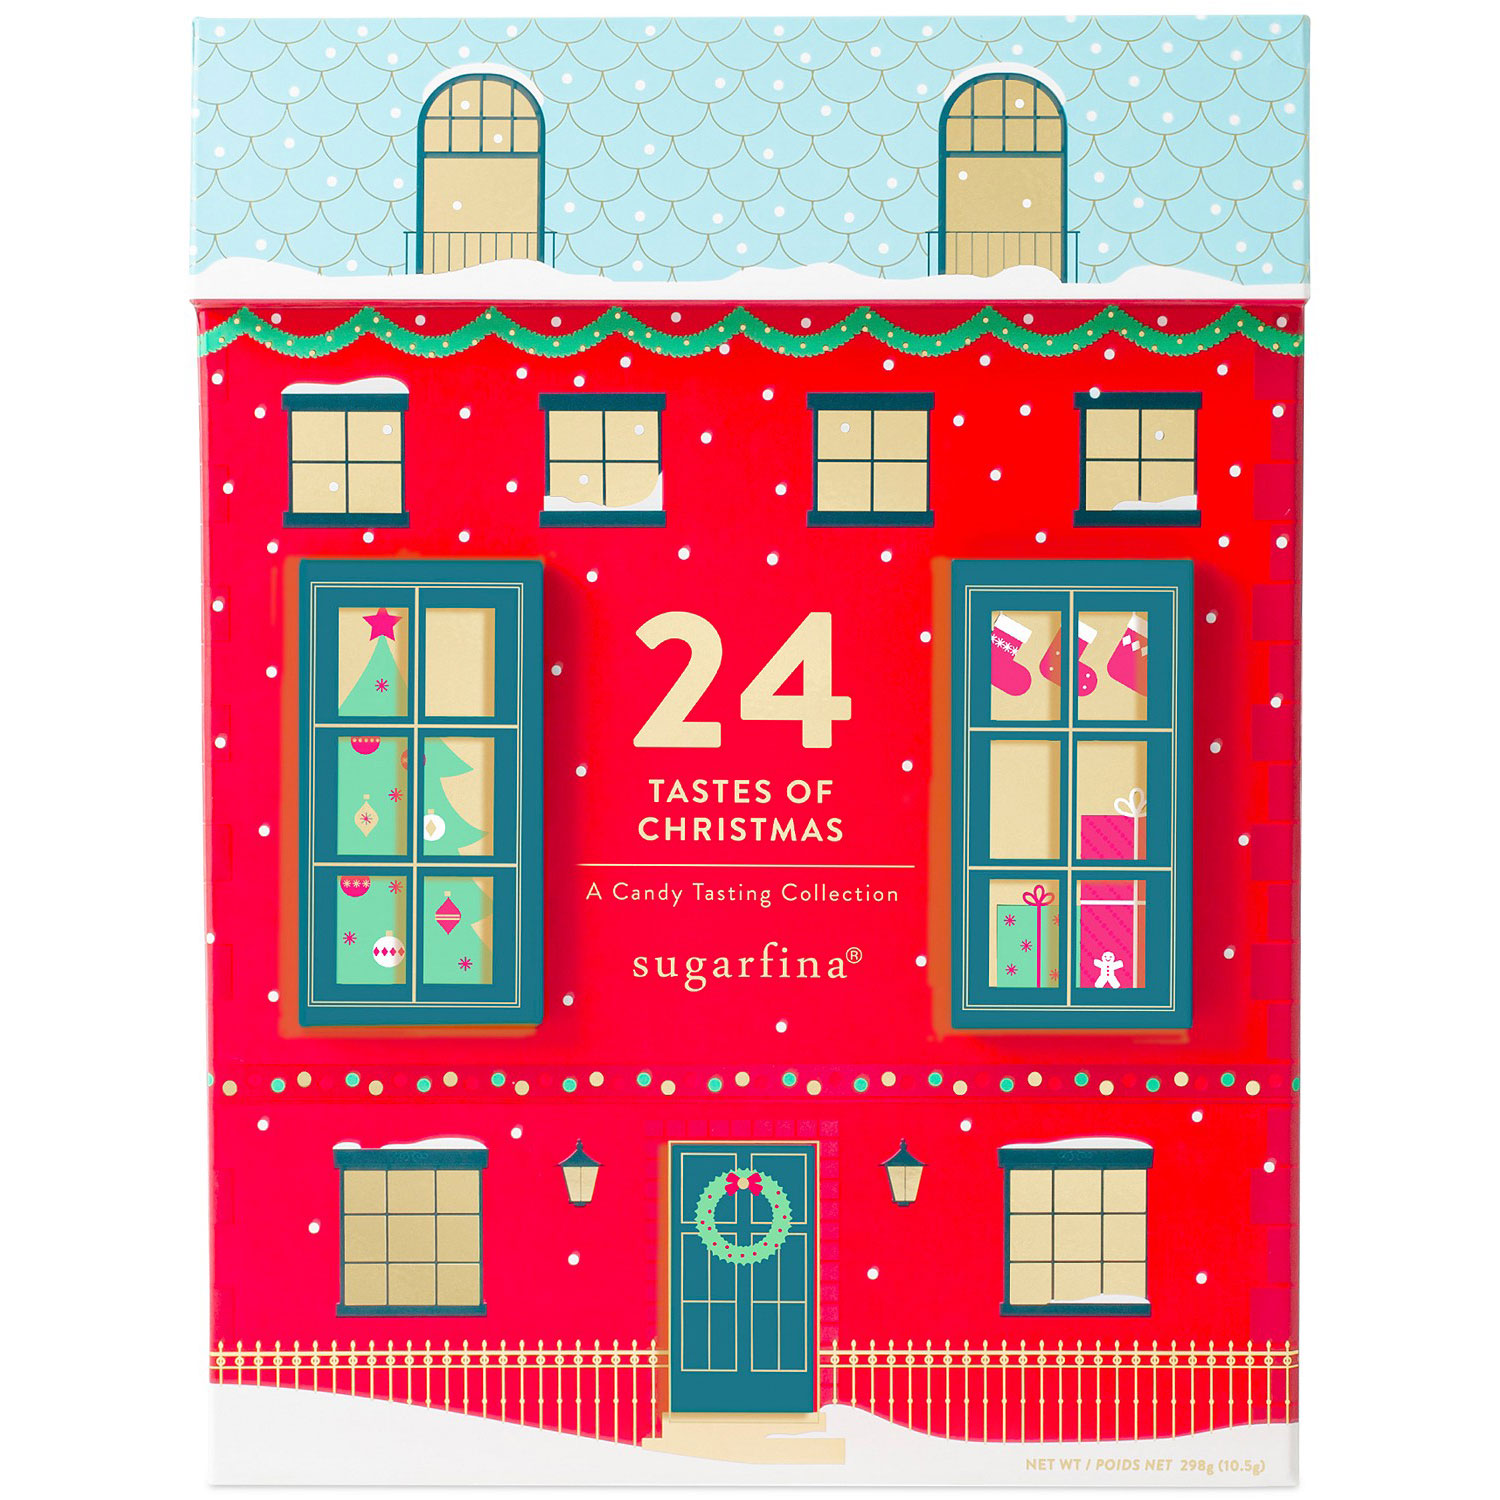 Sugarfina Tastes of Christmas Advent Calendar